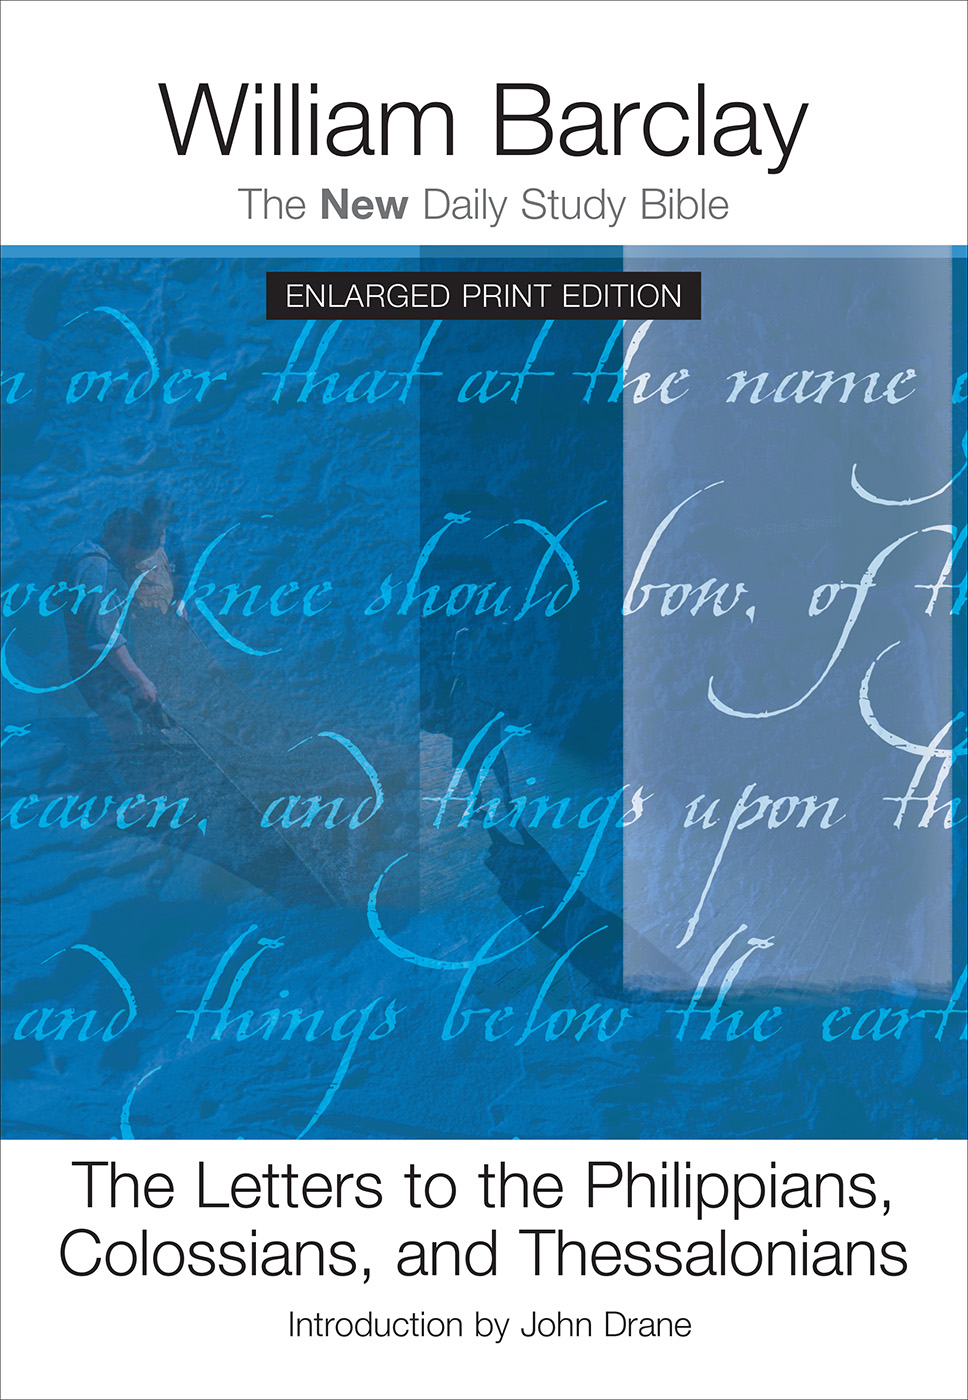 The Letters to the Philippians, Colossians, and Thessalonians-Enlarged